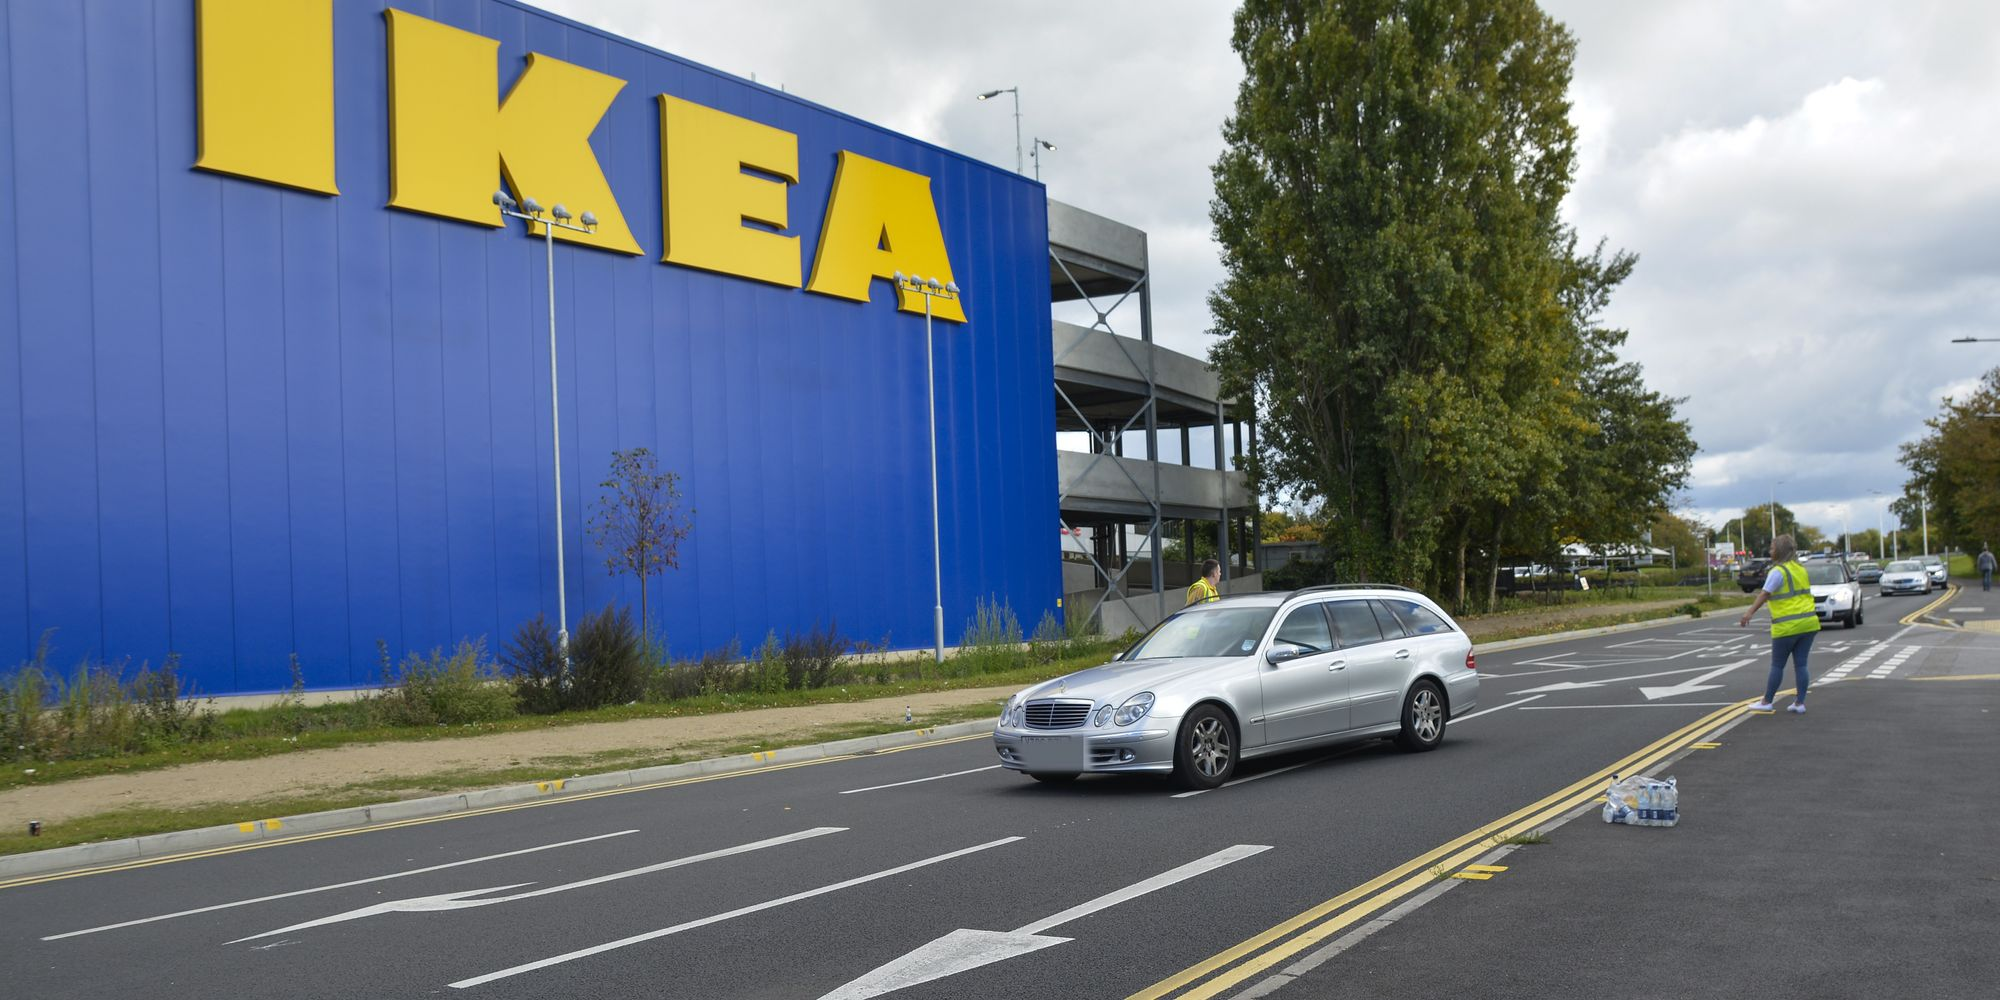 Ikea Reading Contractor Dies In 39 Workplace Accident 39 As Thames Valley Police Launch